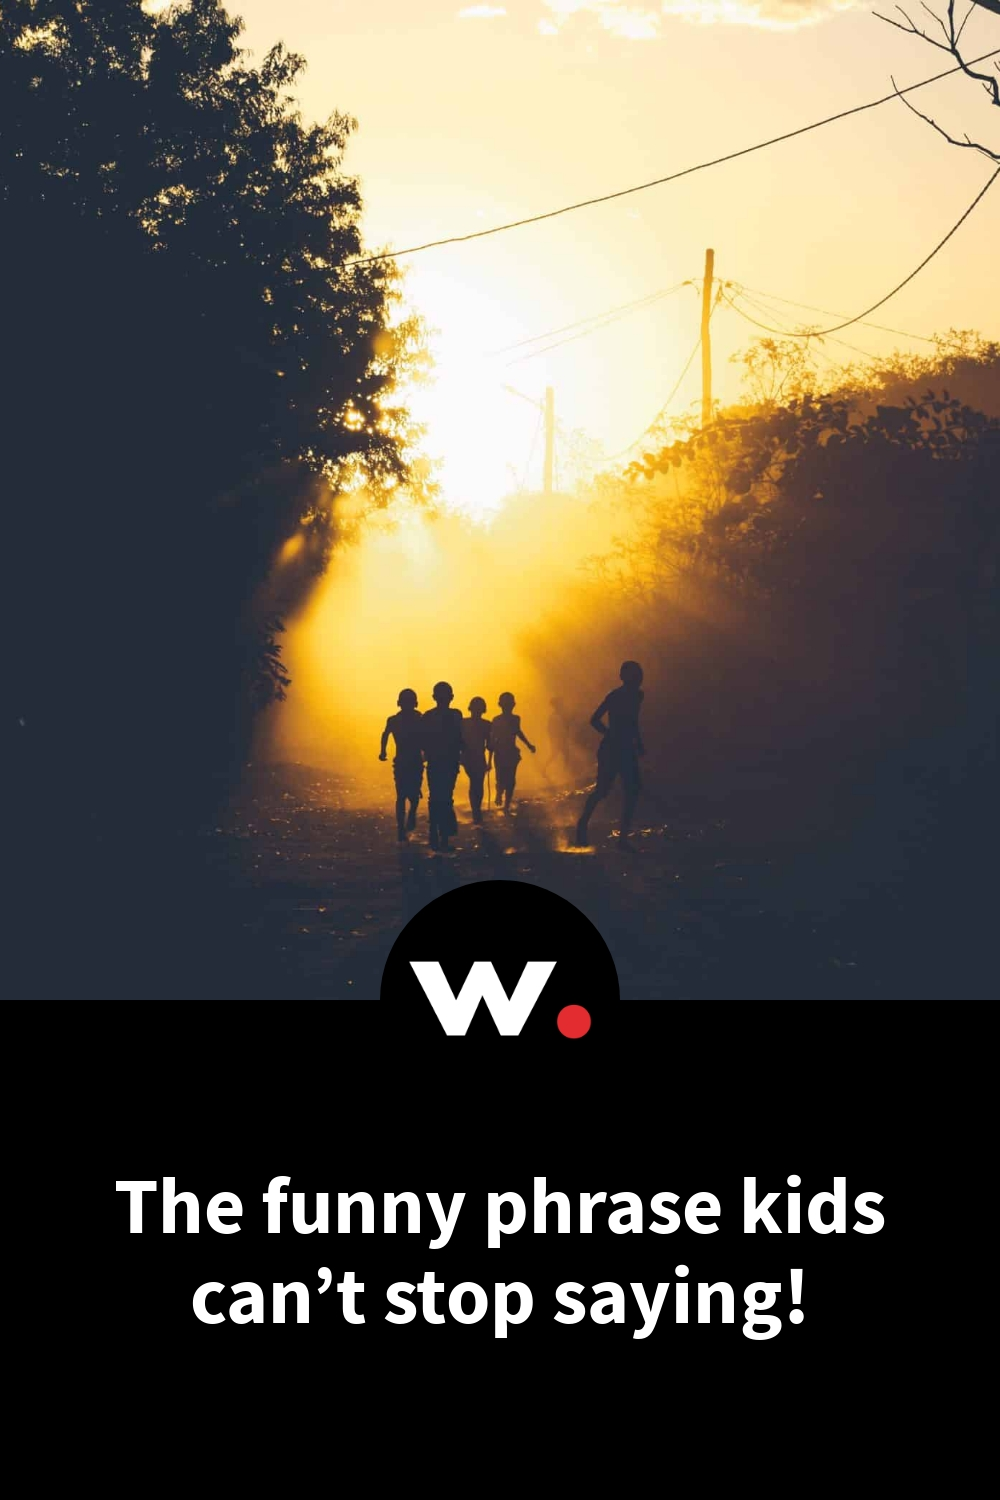 The funny phrase kids can't stop saying!